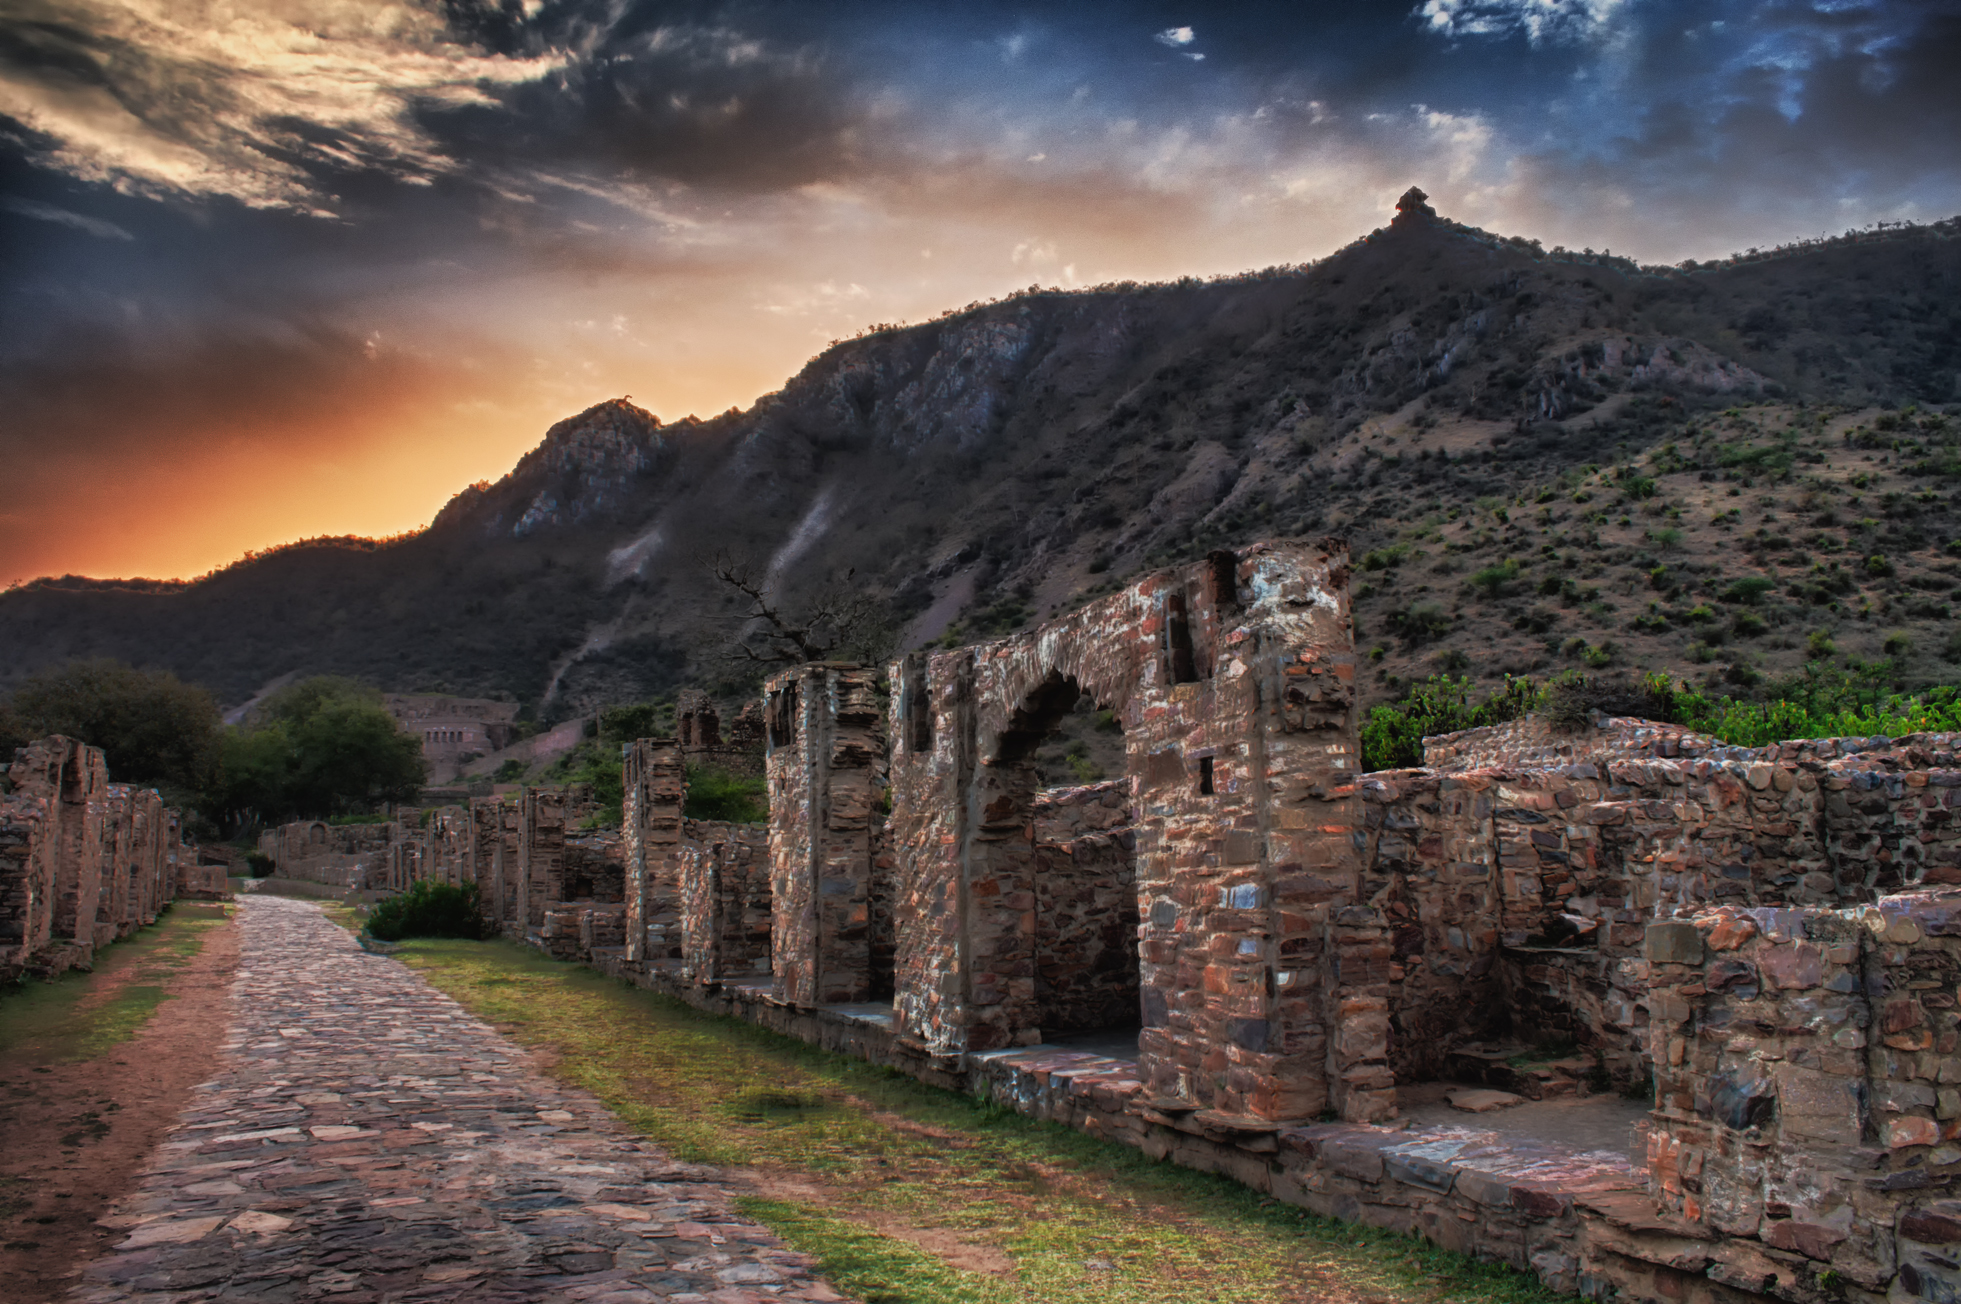 a land destroyed by hatred. the haunted land of bhangarh in rural rajasthan